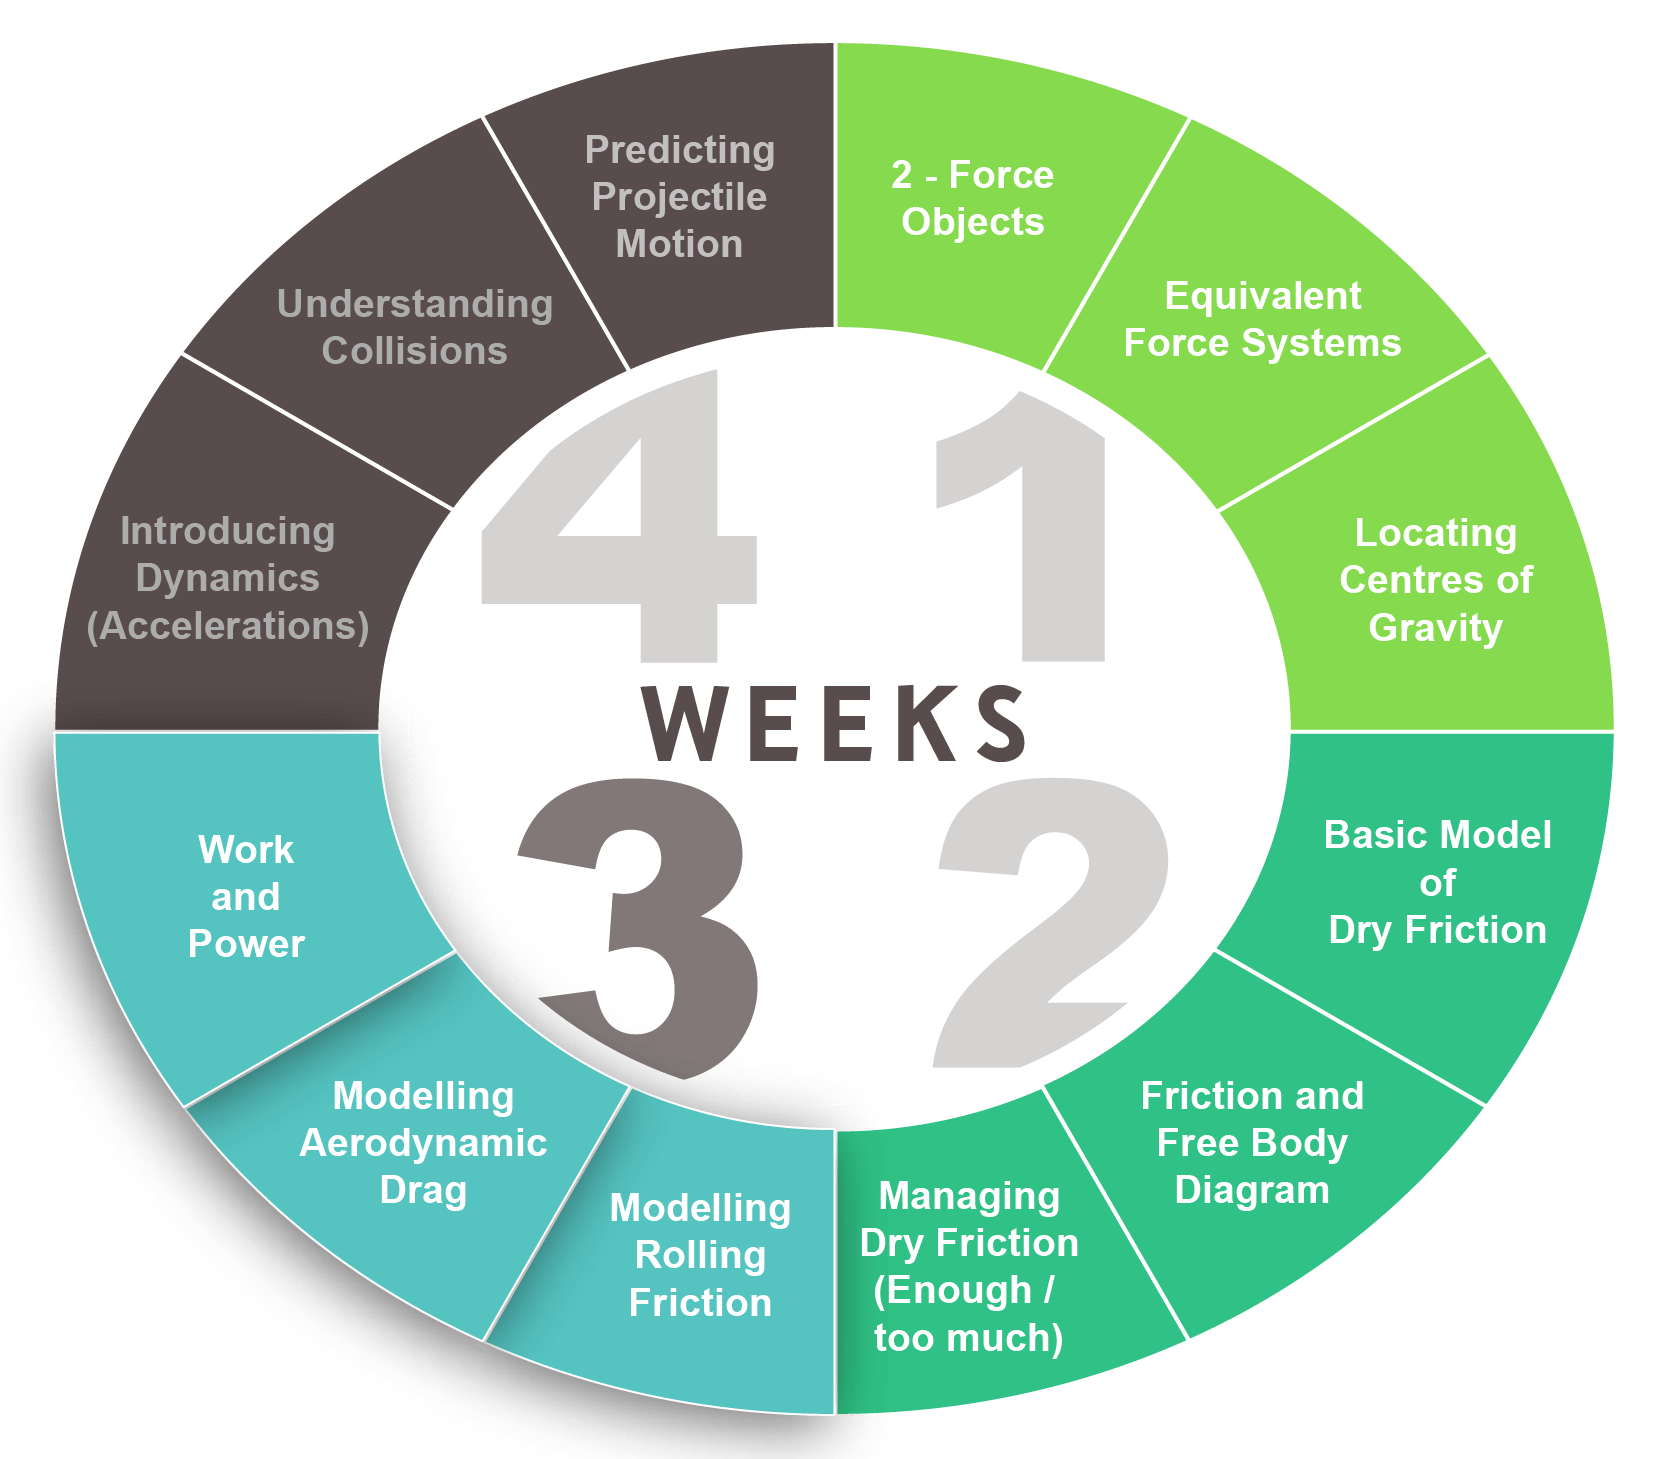 hight resolution of week 3 concept wheel click to expand